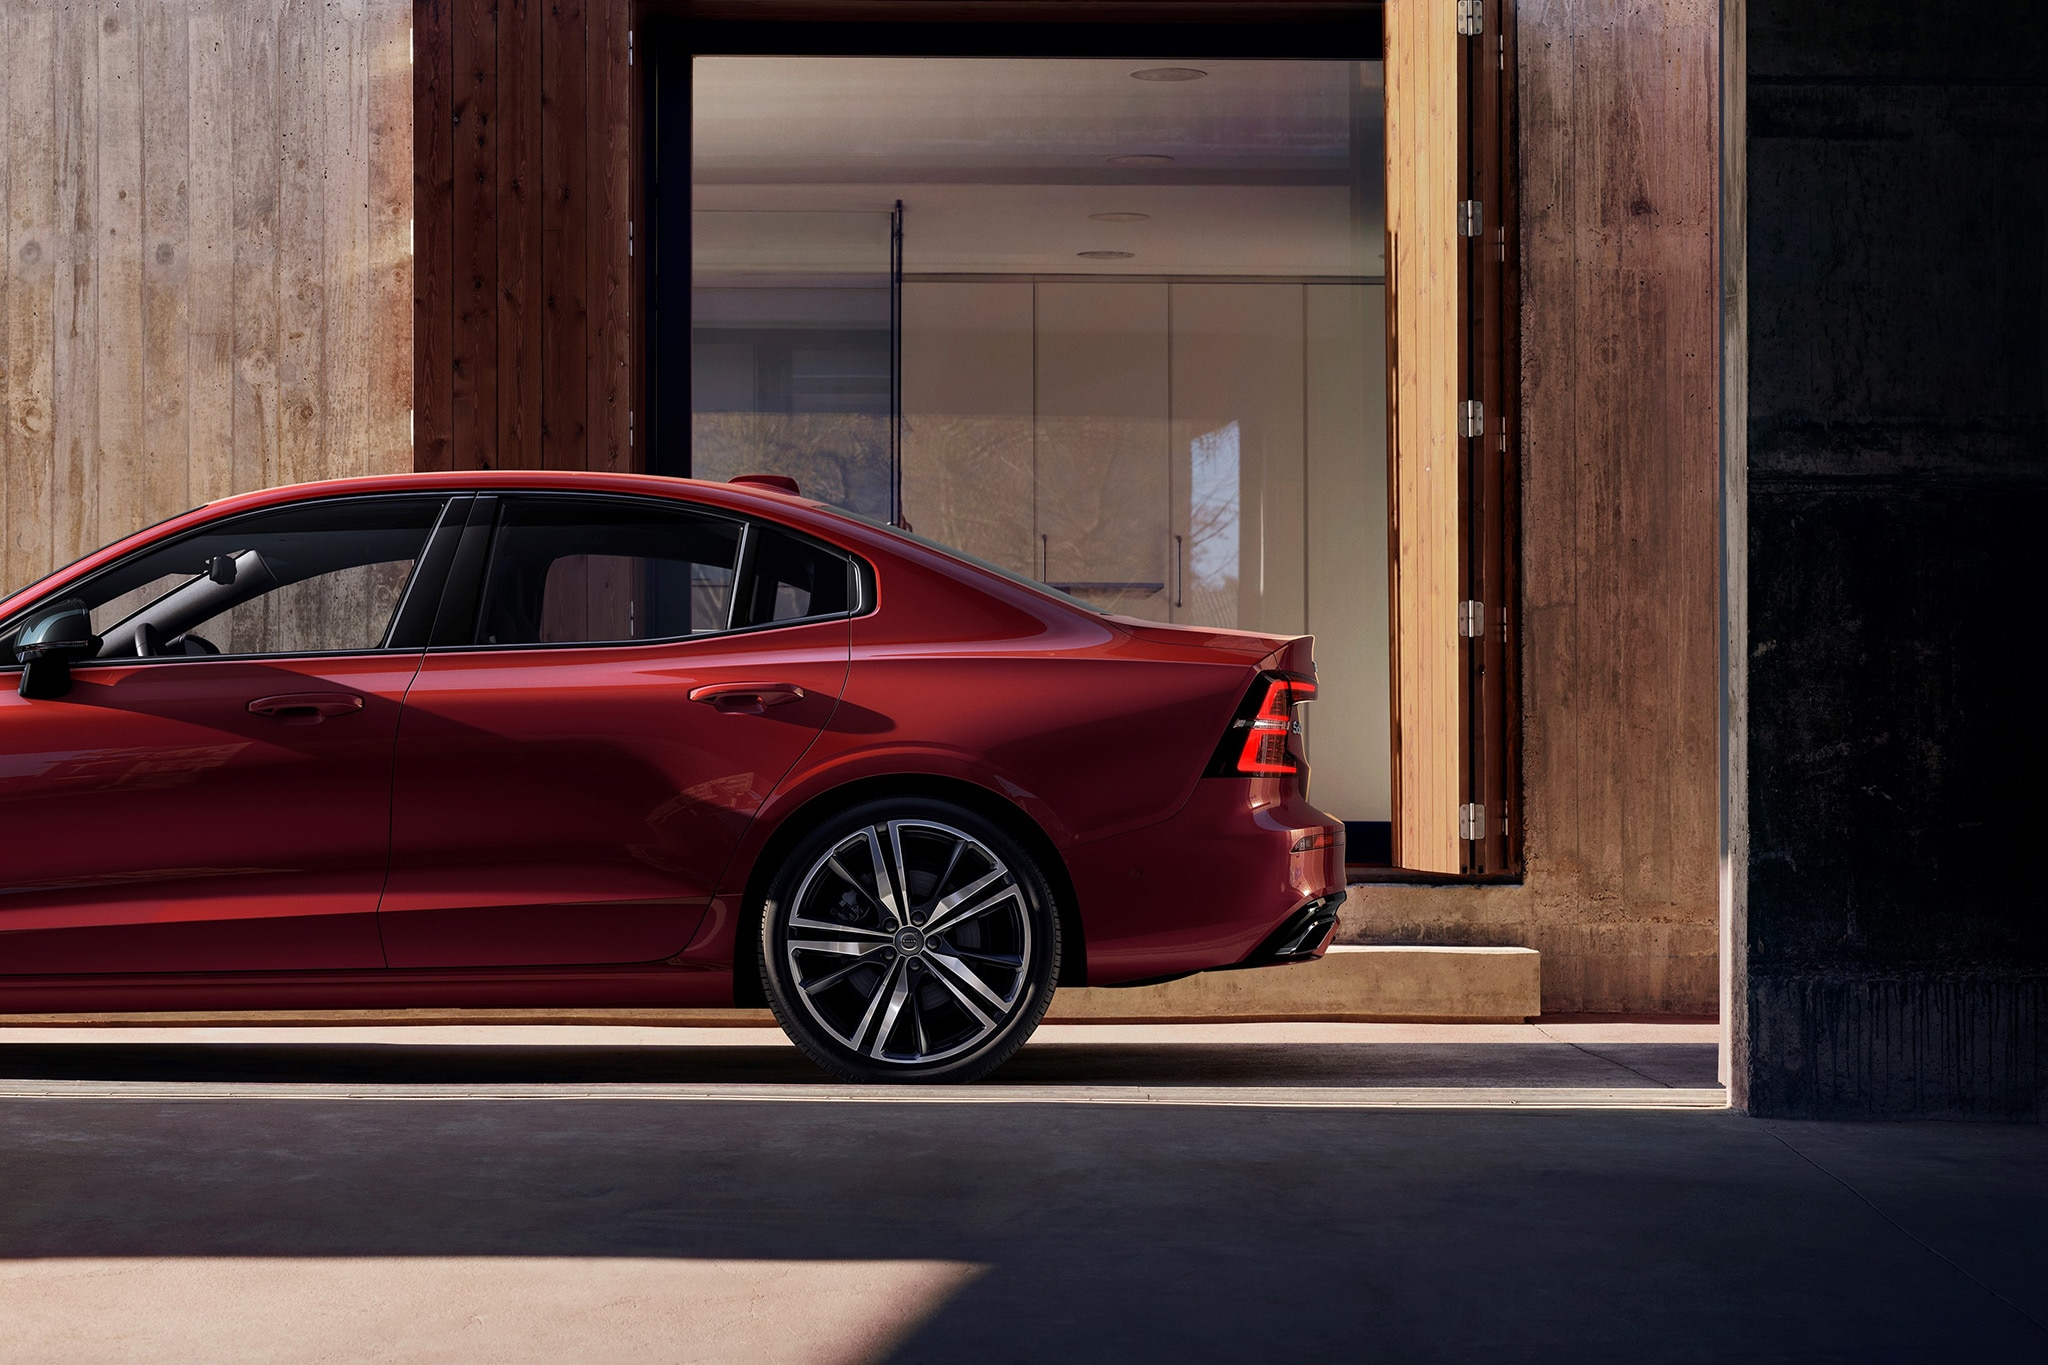 2019 Volvo S60 Sedan Brings Elegant SPA Platform to Entry